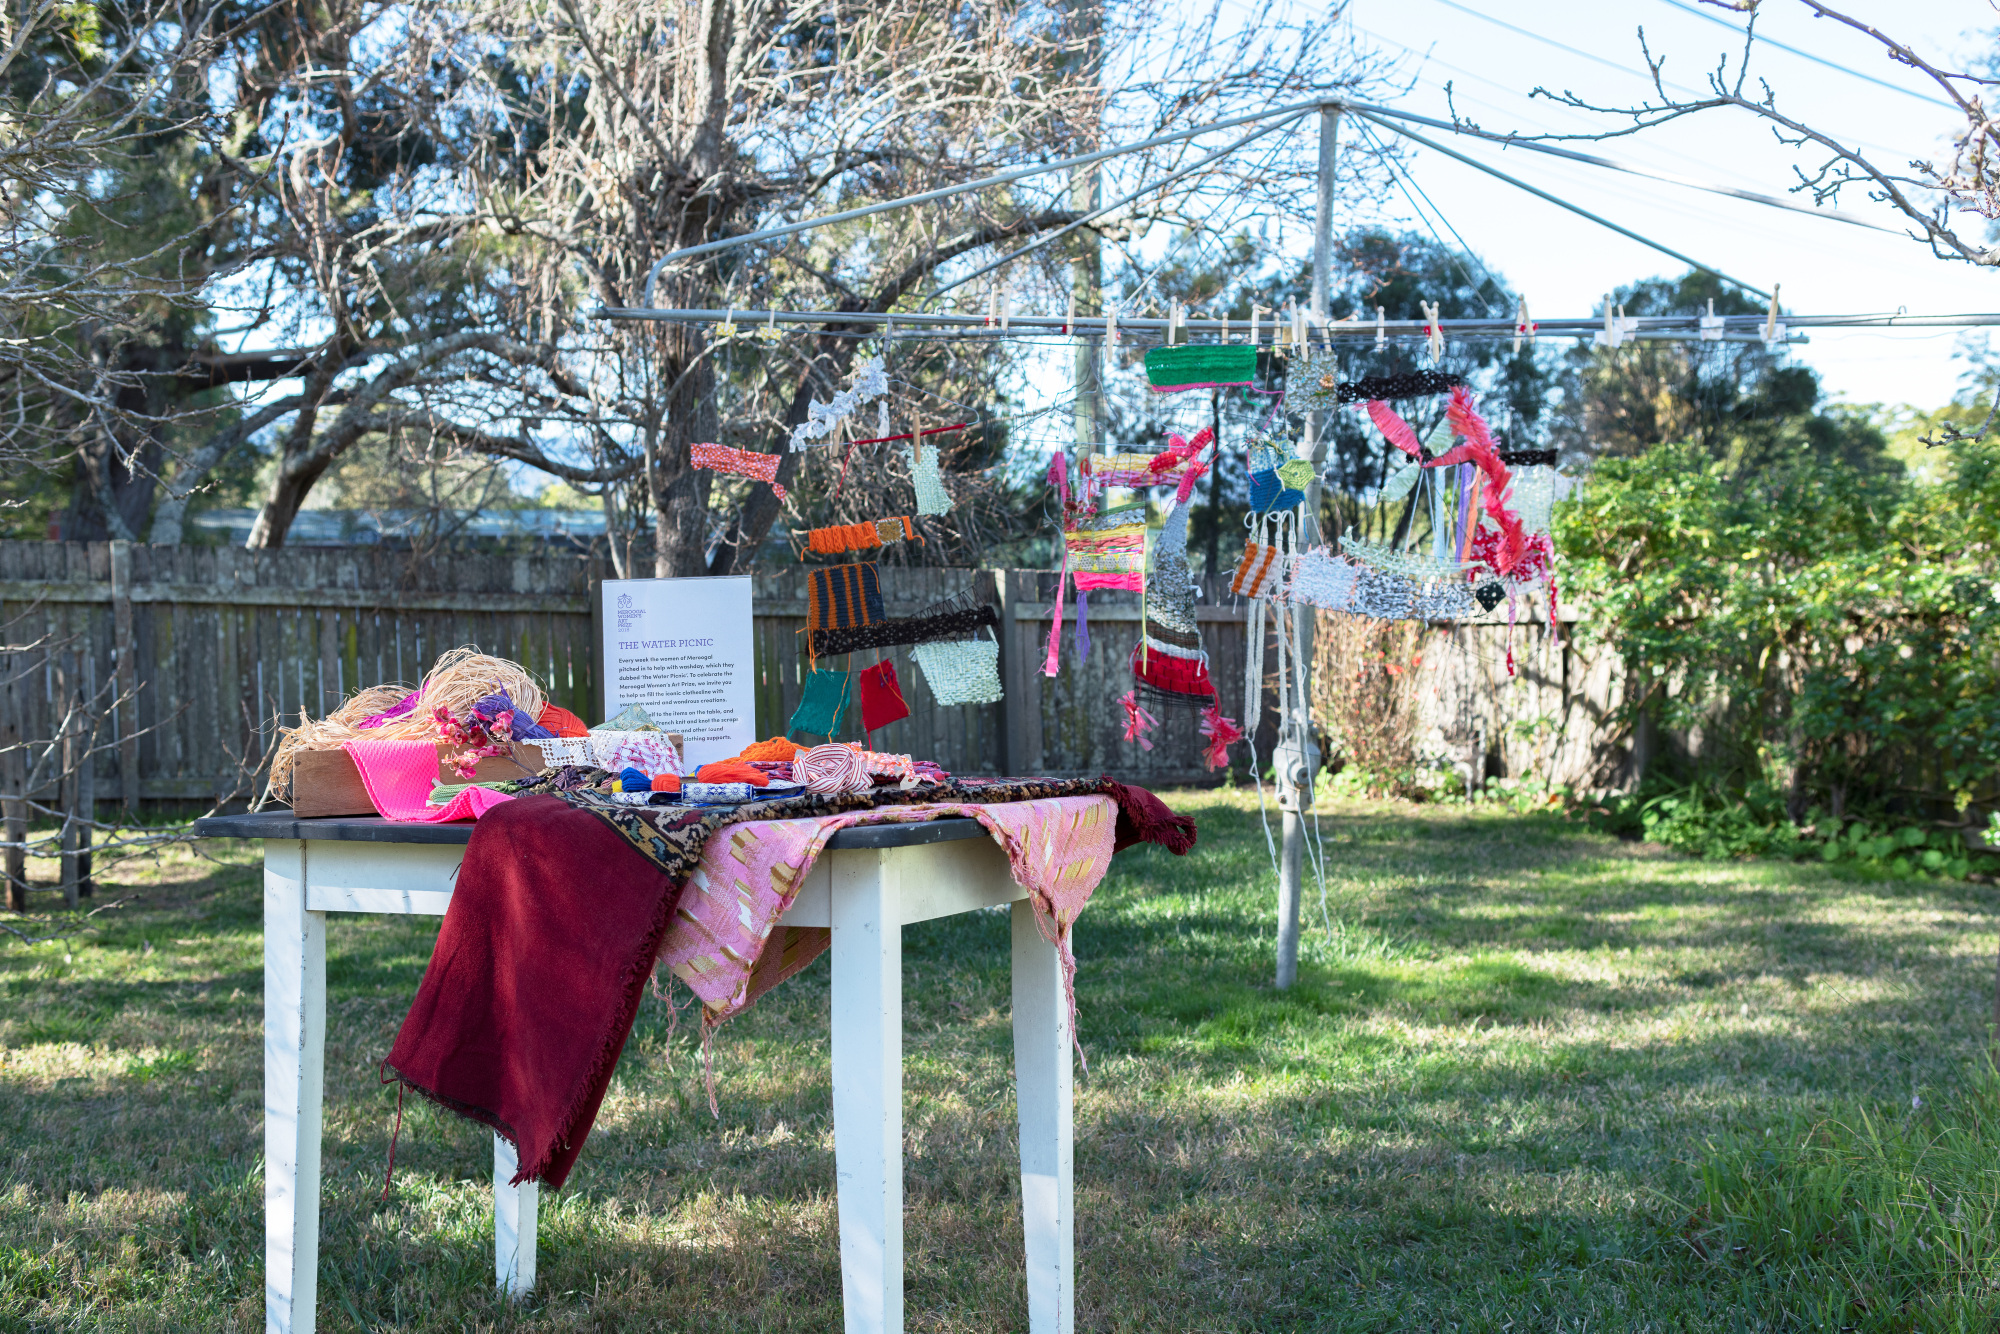 Clothesline with artworks hanging from it, with table in foreground with art supplies.